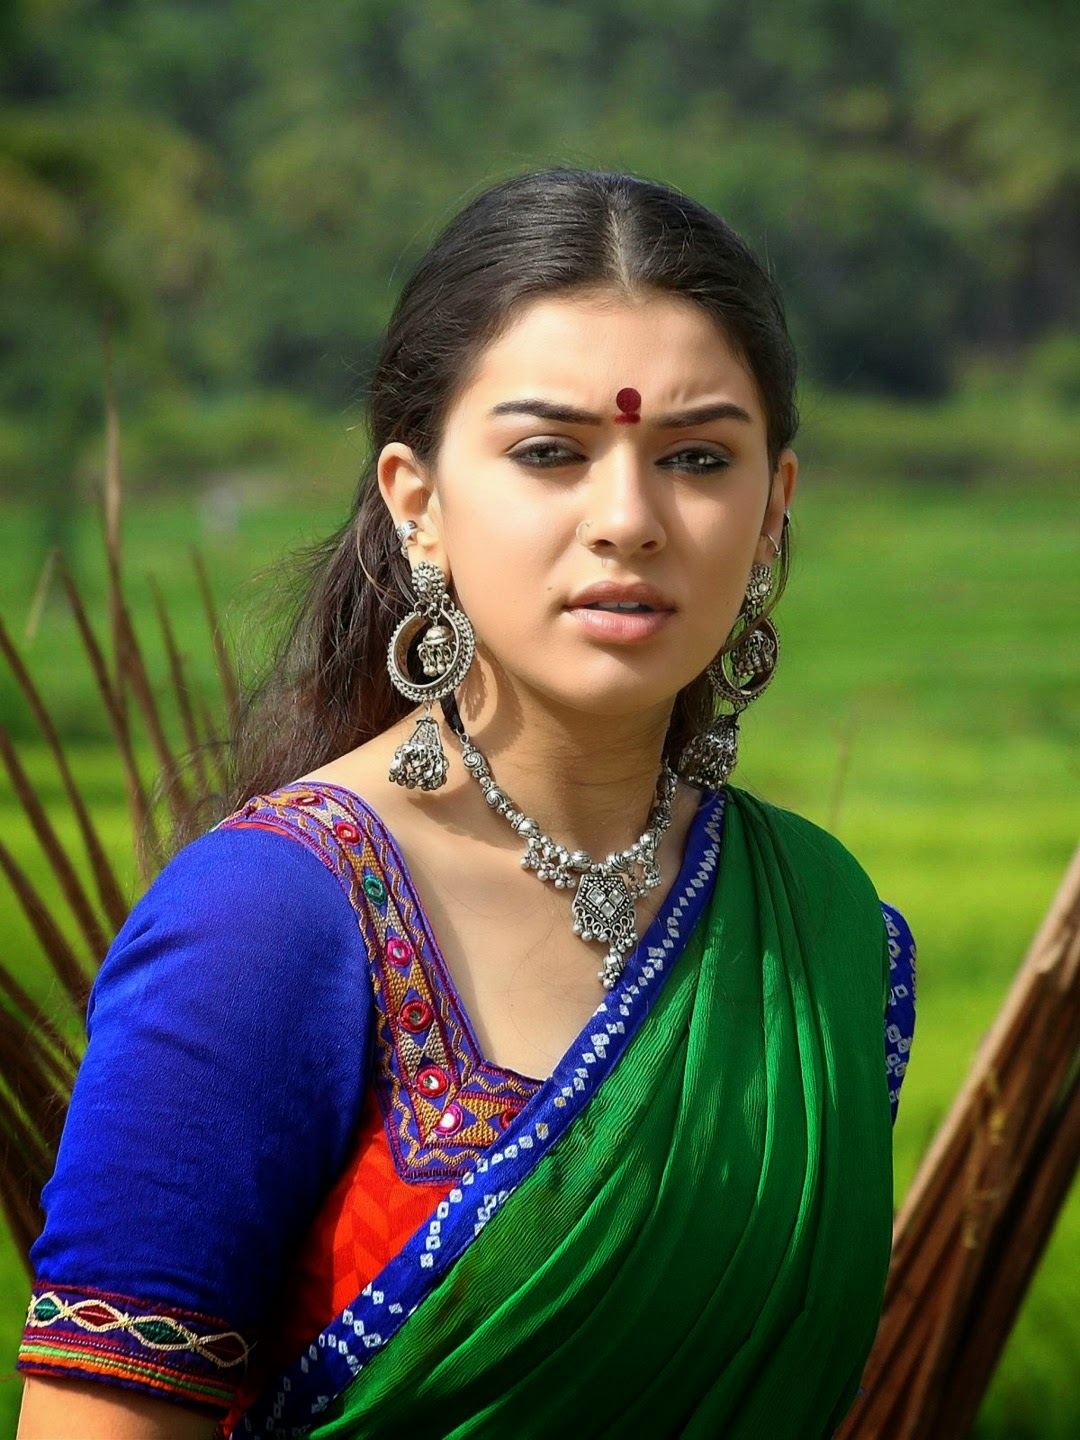 hansika motwani new photos from aranmanai tamil movie ~ celebs next